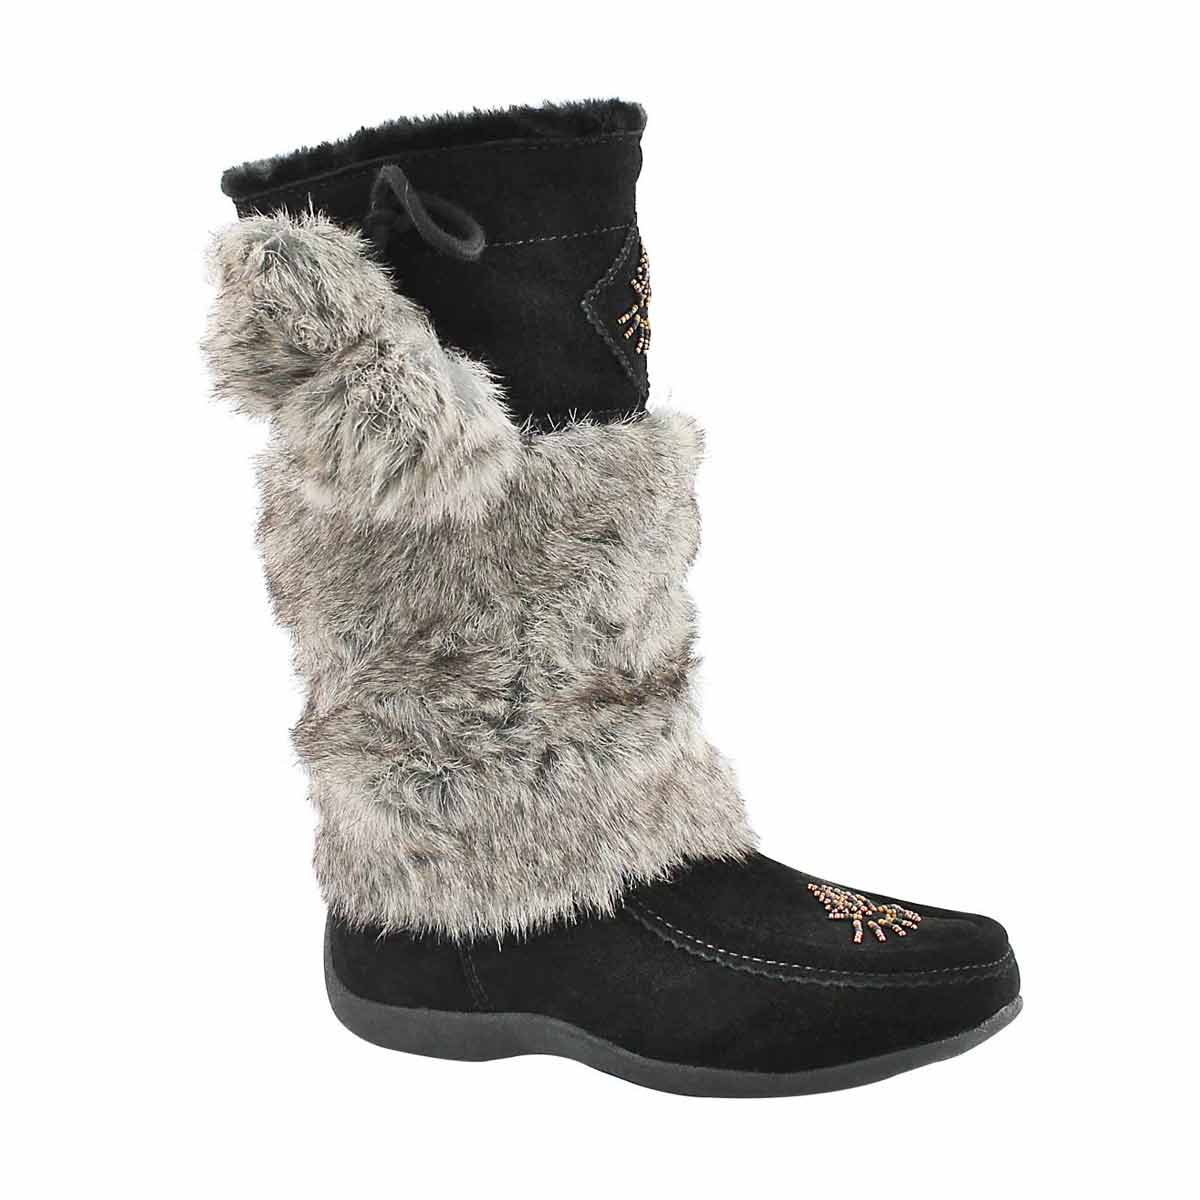 Girls' NISKA 4 JR black mukluks